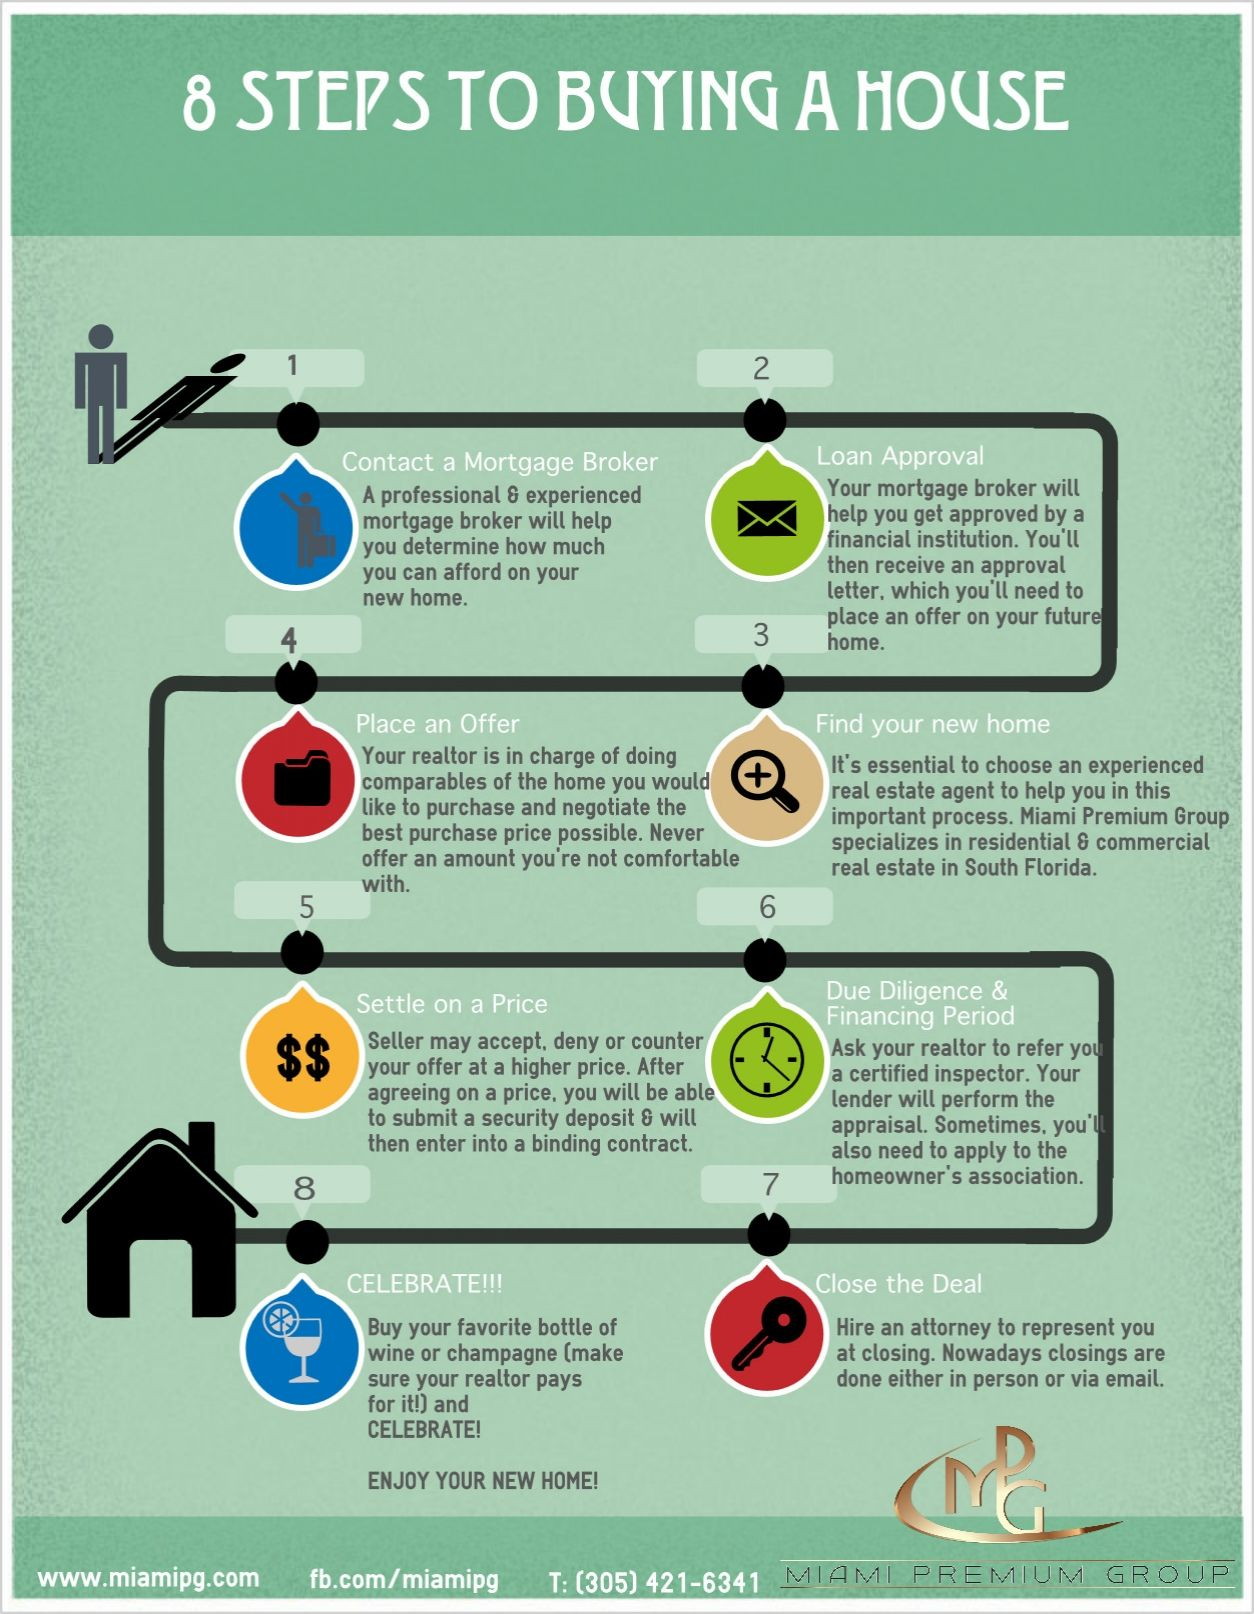 8stepstobuyingahouse Jpg 1 254 1 614 Pixels Buying A New Home Buying Your First Home Home Ownership